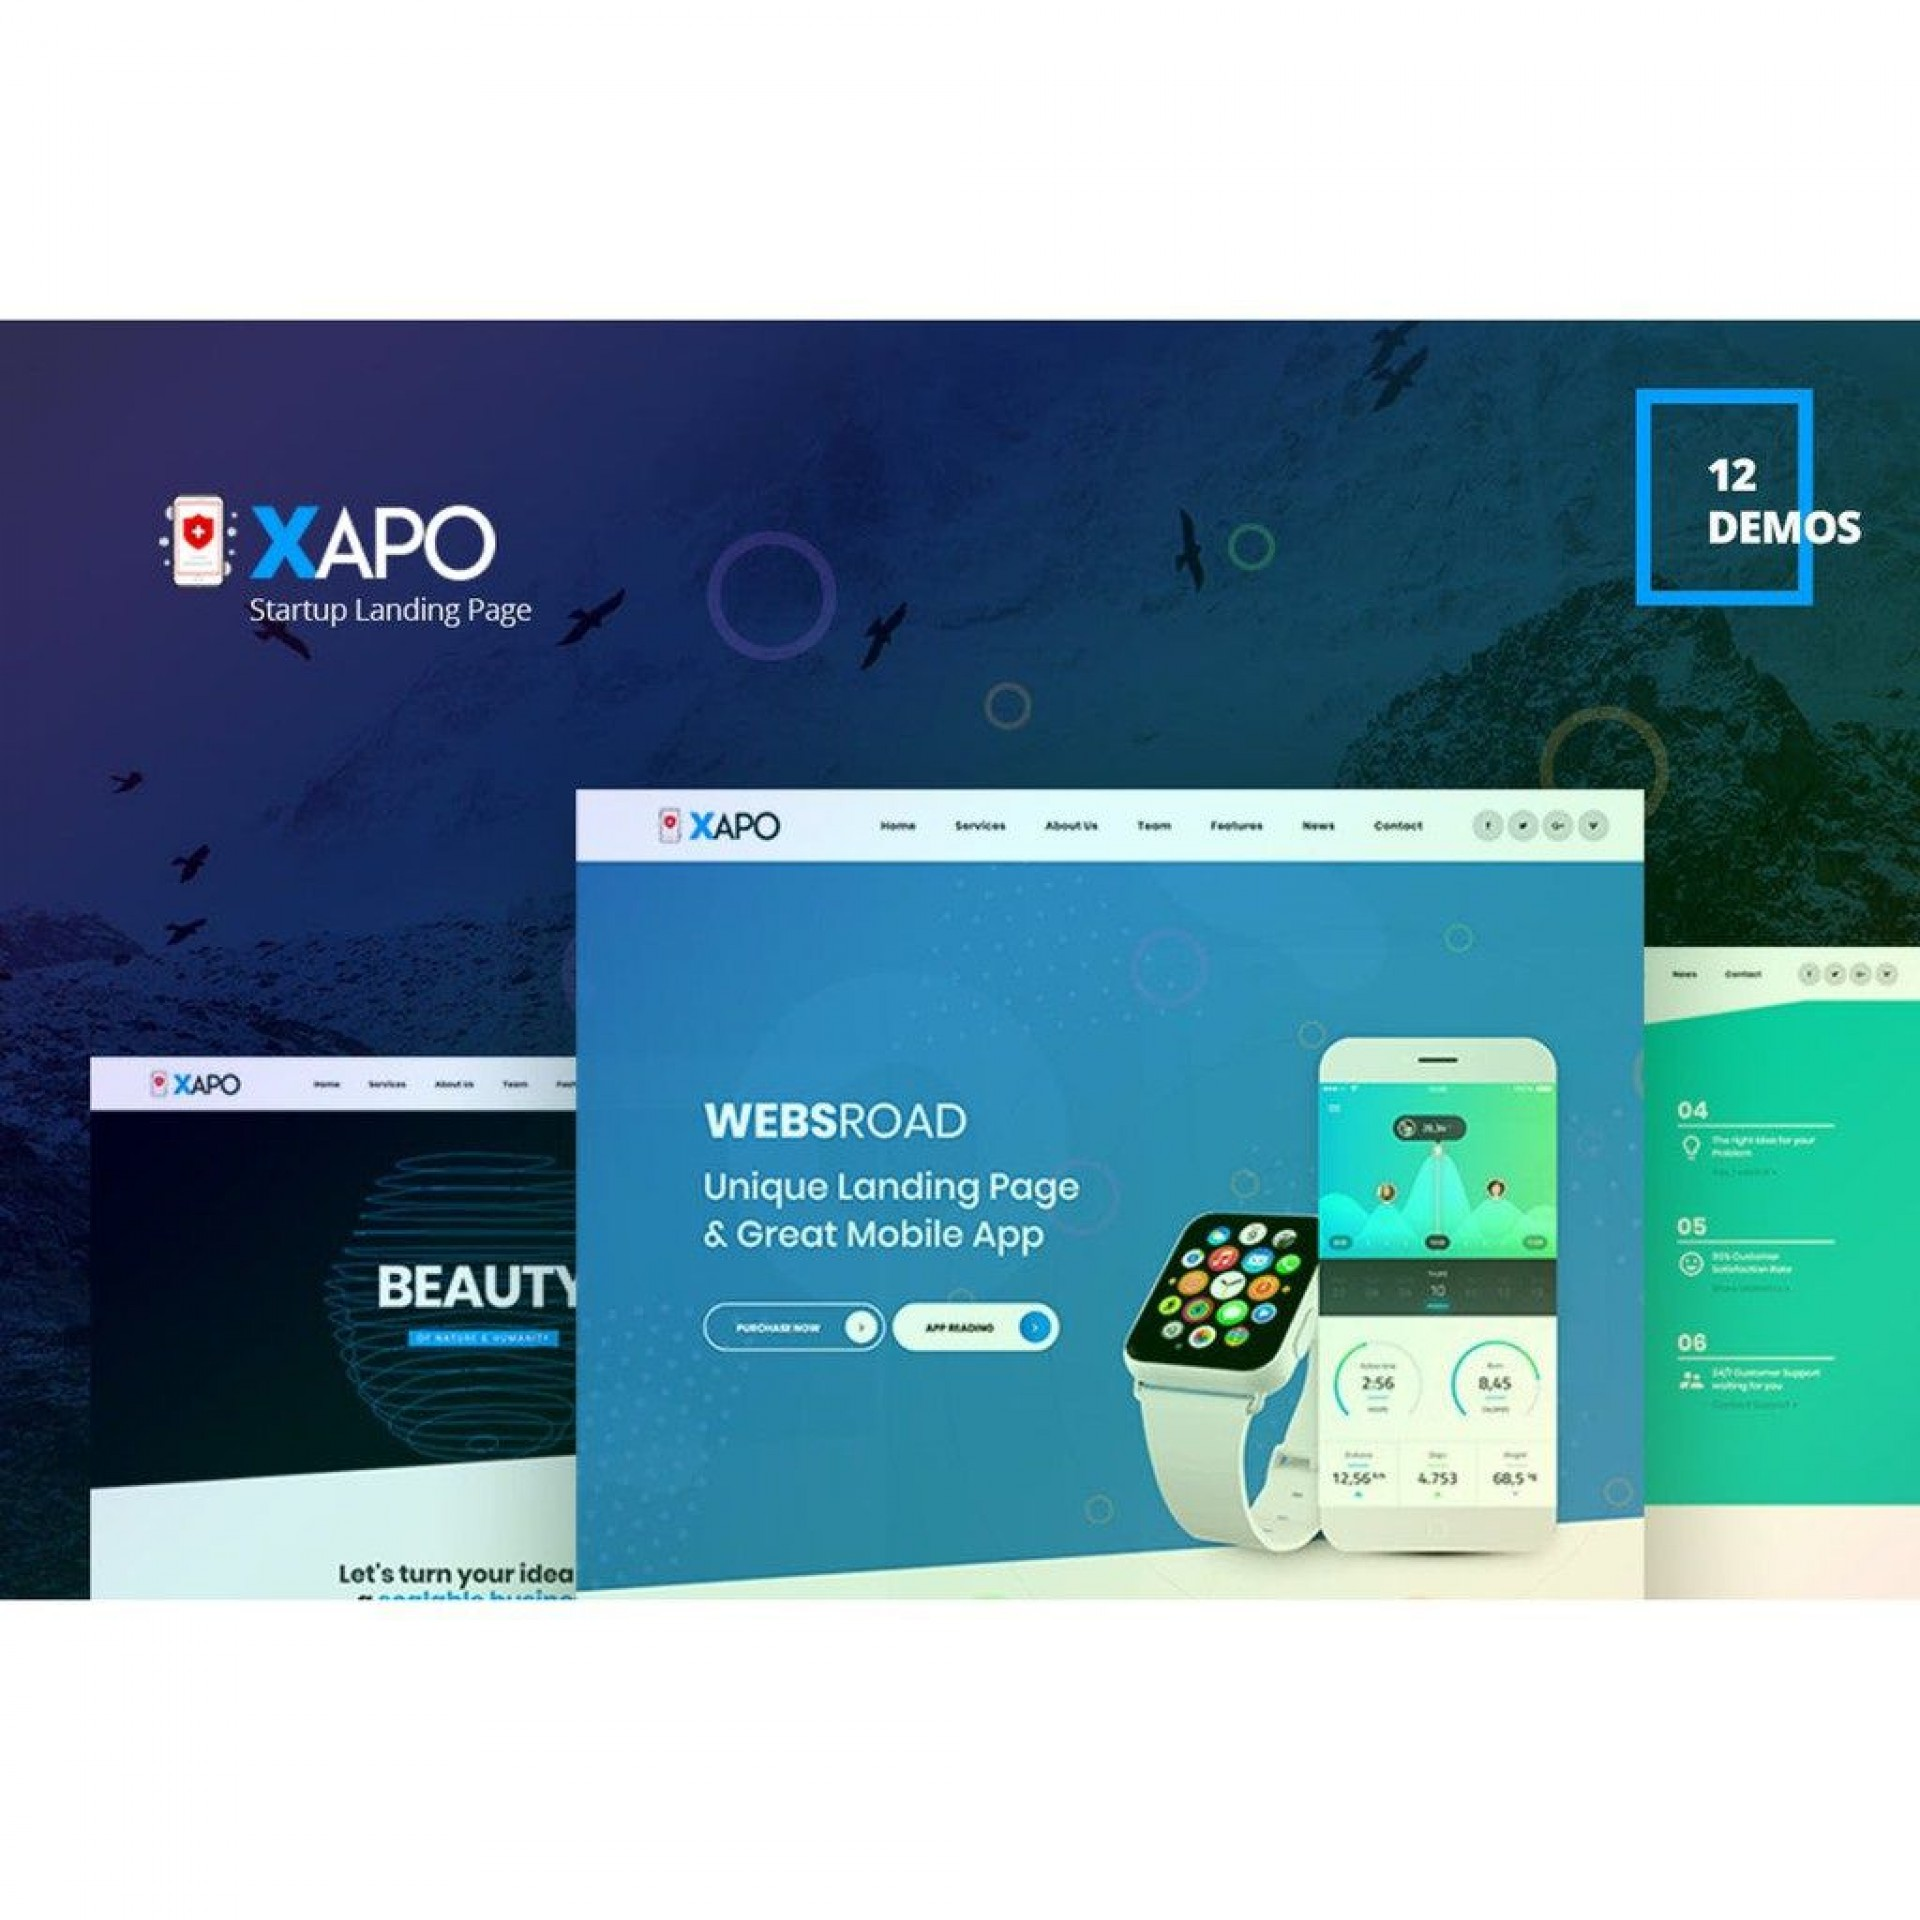 000 Breathtaking Responsive Landing Page Template Picture  Templates Marketo Free Pardot Html5 Download1920